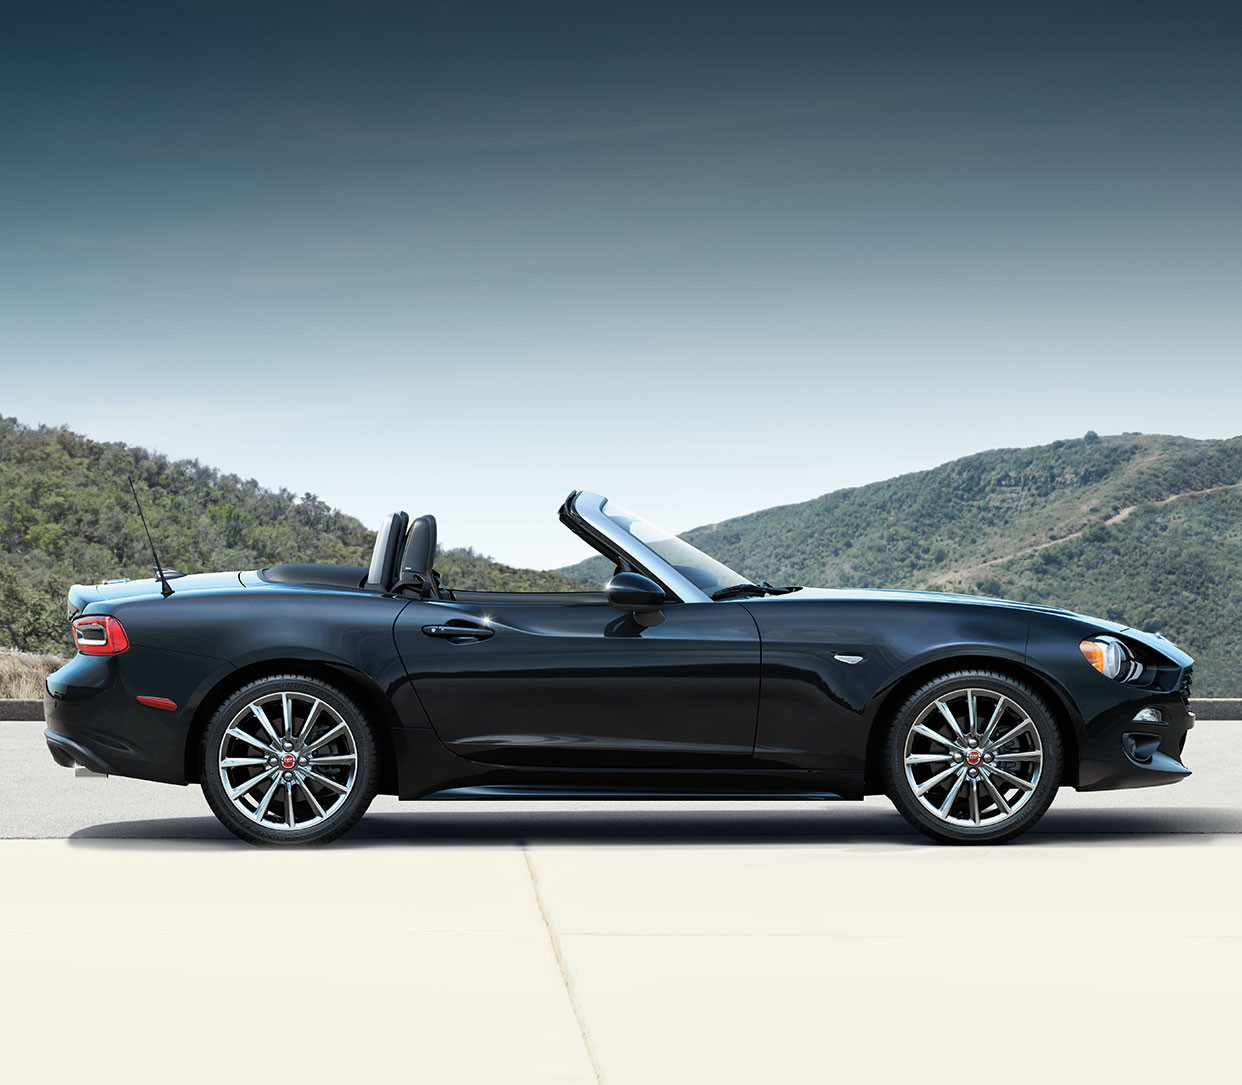 2019 Fiat 124 Spider front view, shown in white